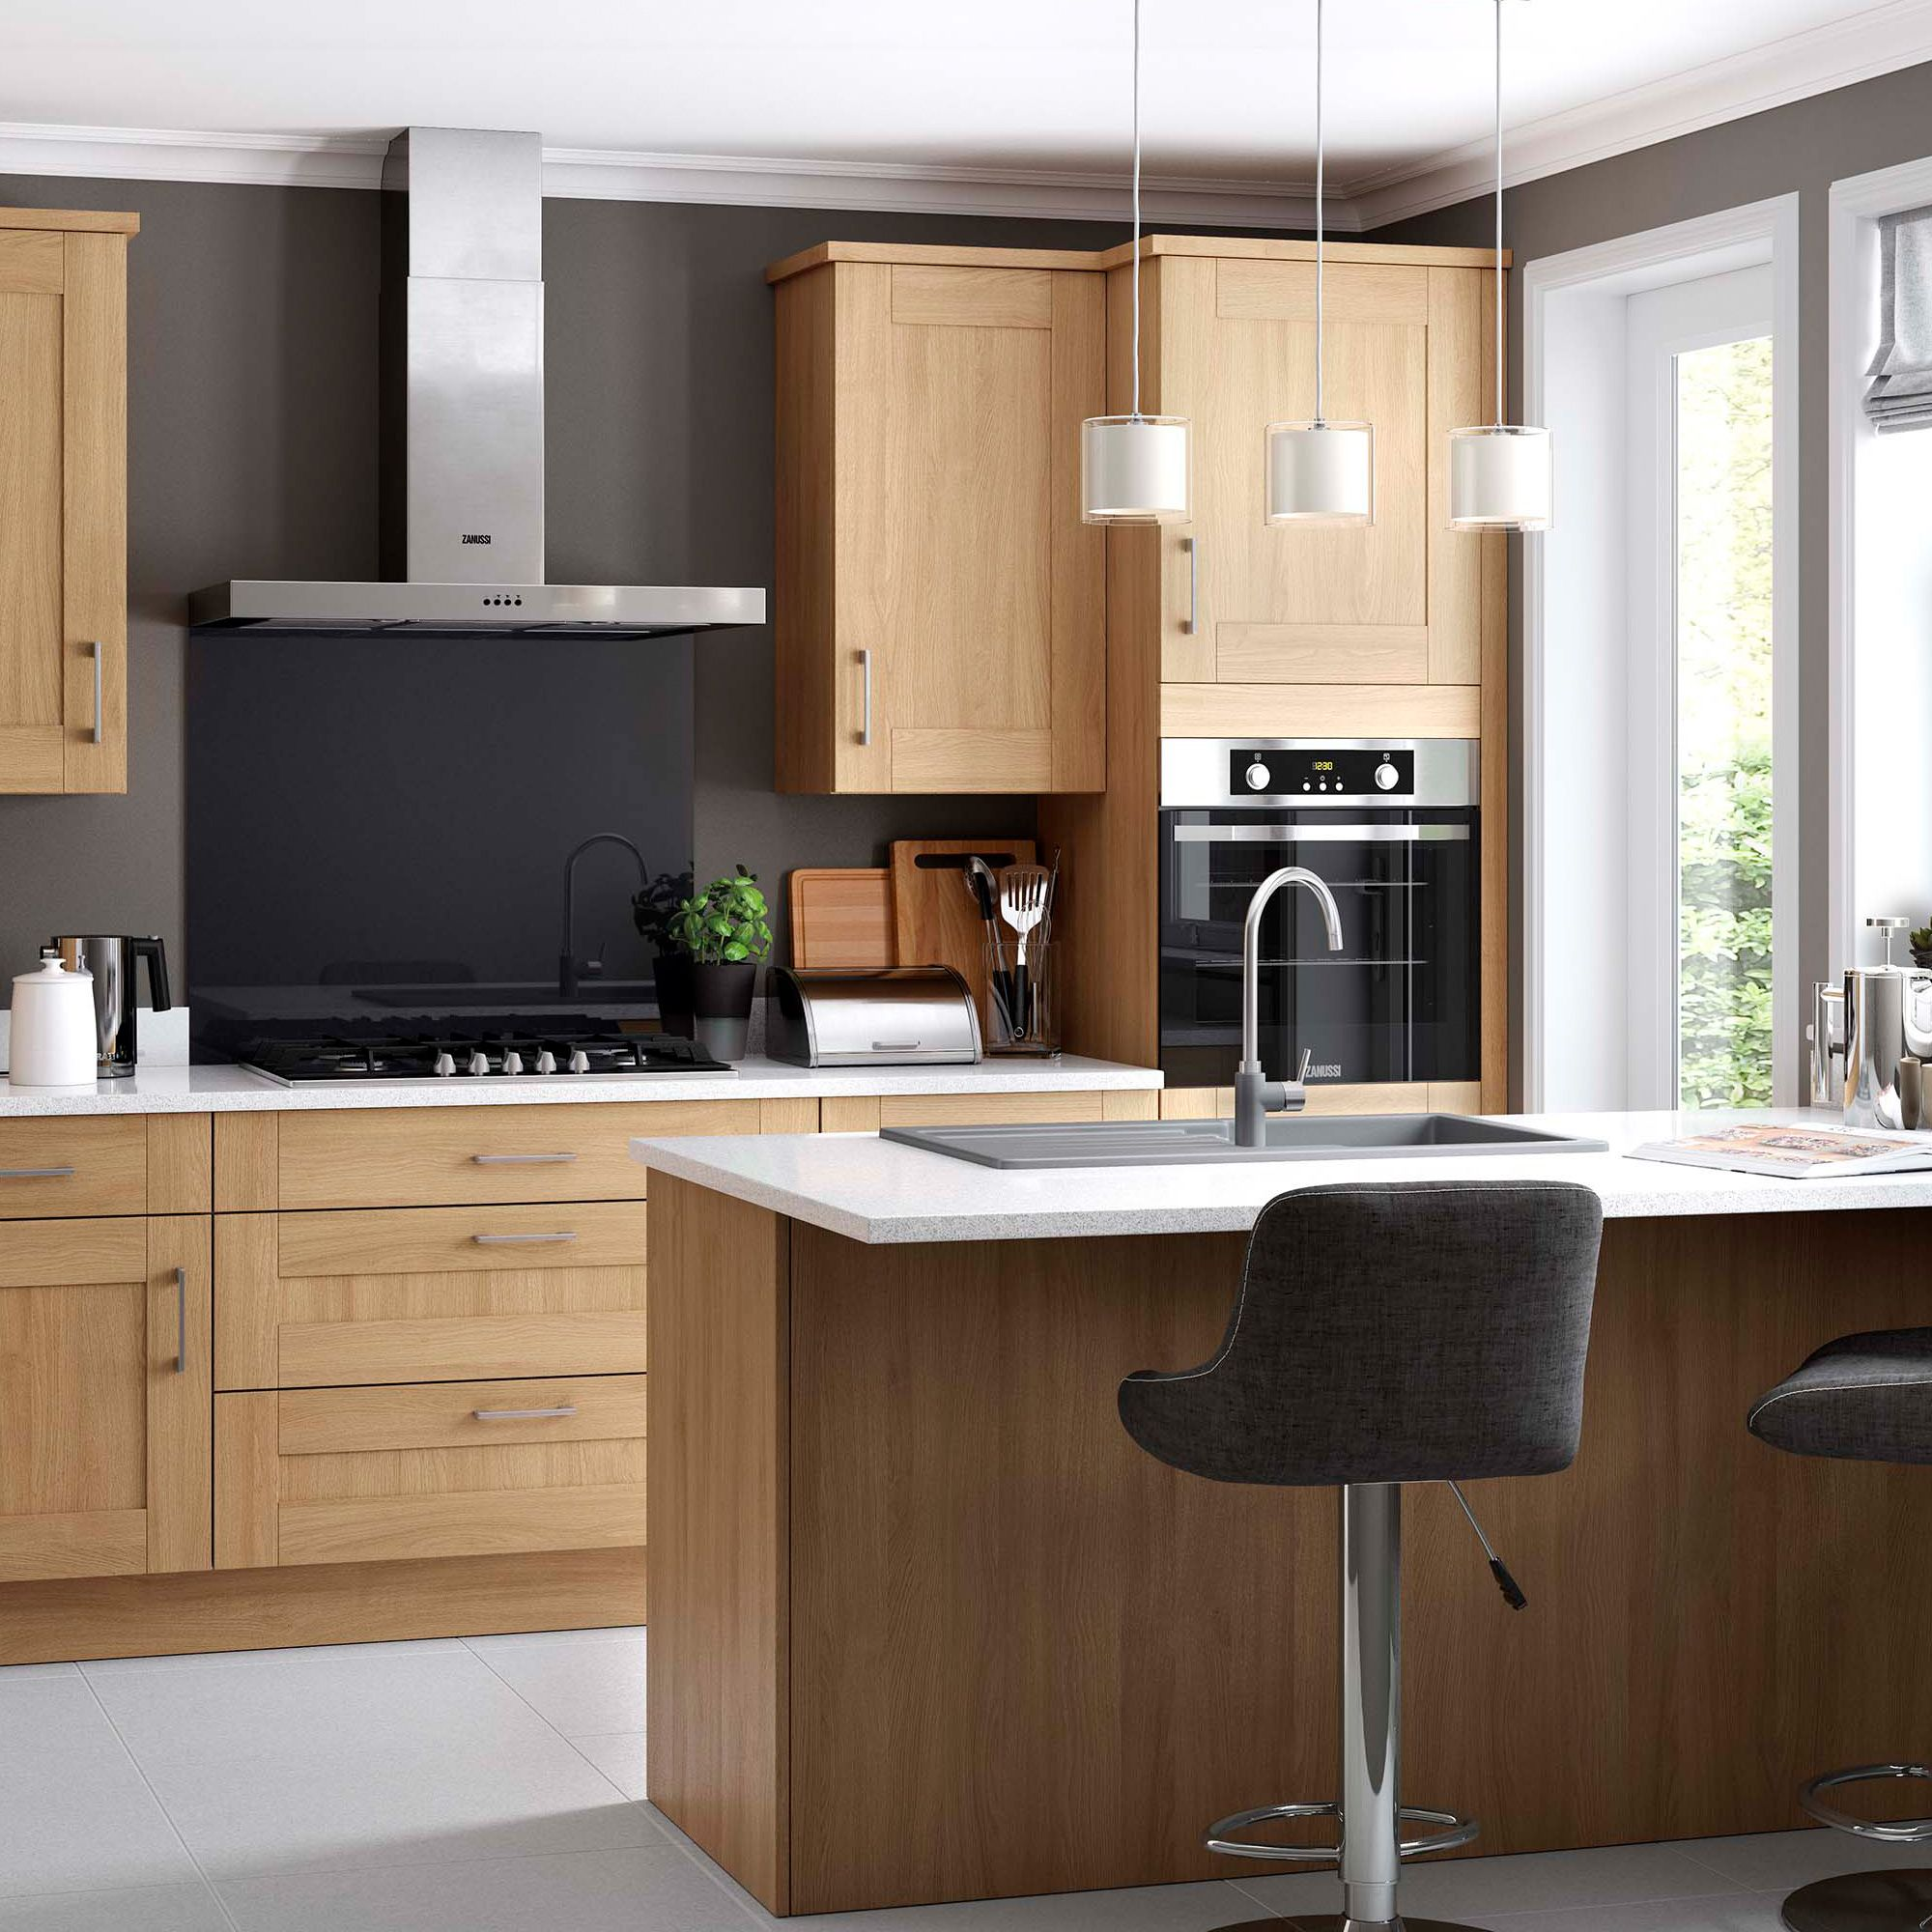 Fitted furniture plan for kitchens & bathrooms